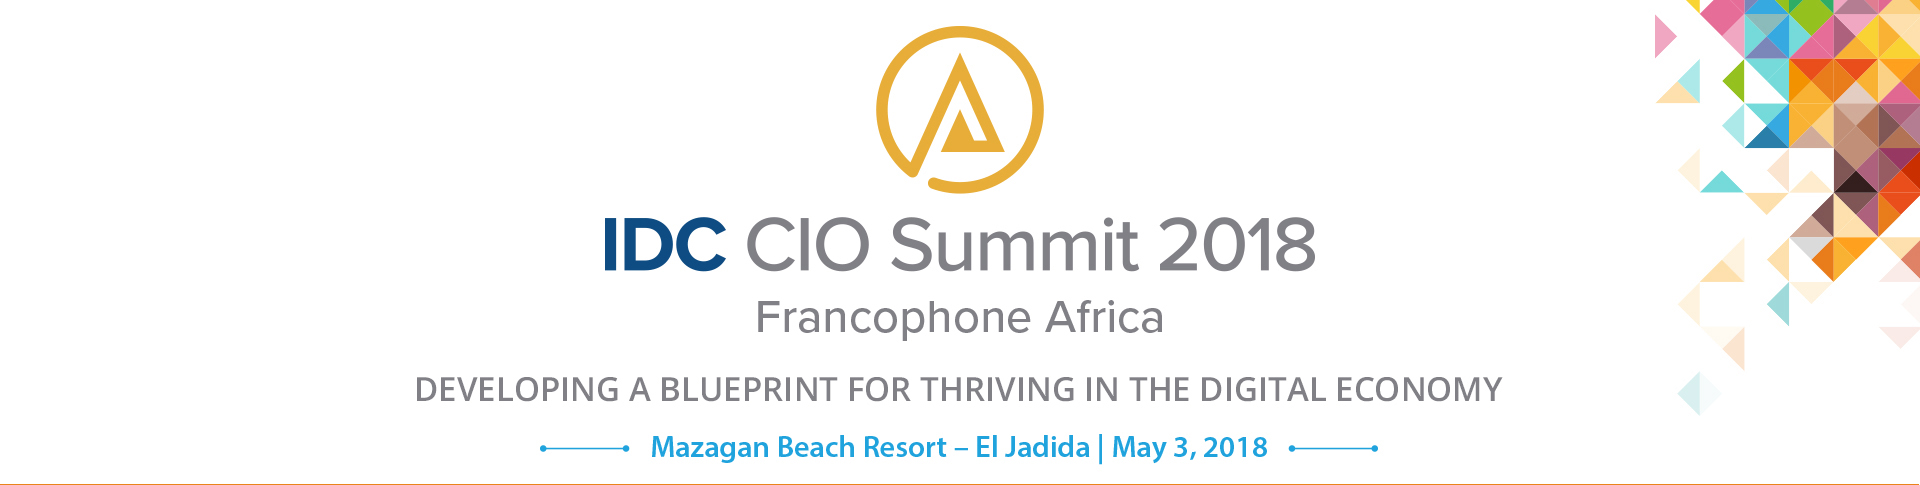 Francophone IDC CIO Summit 2018